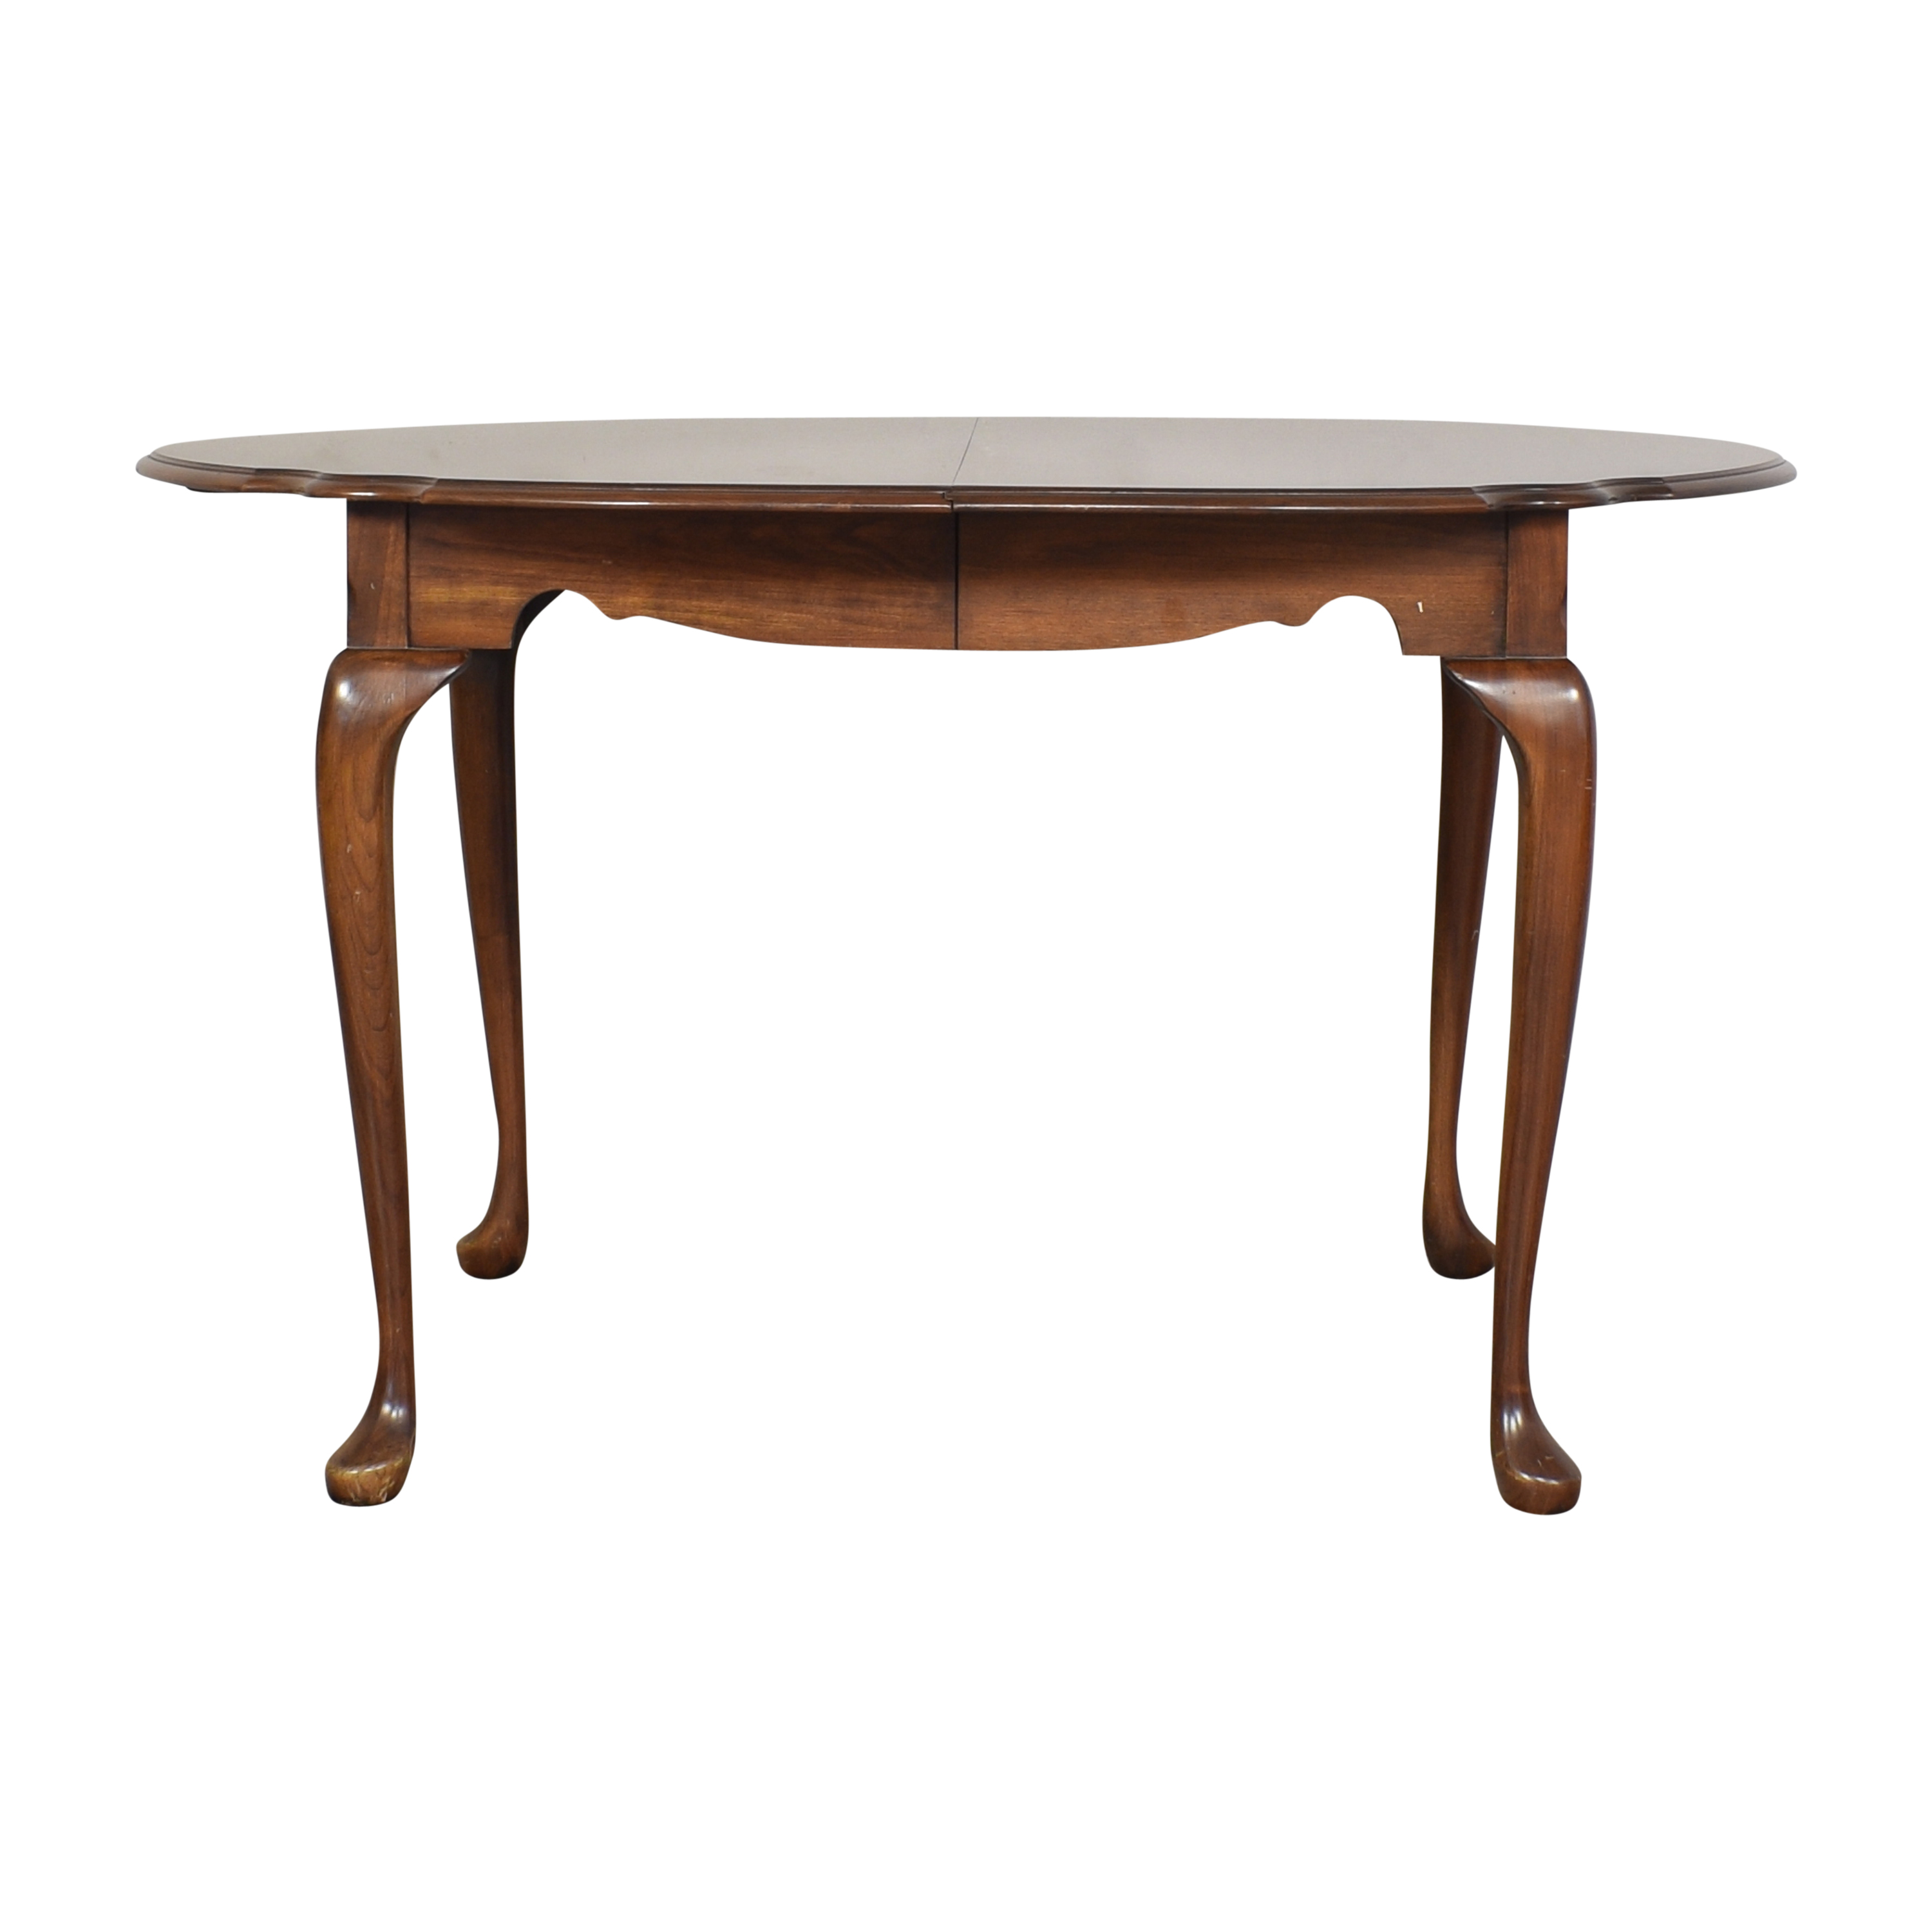 Harden Harden Extendable Dining Table for sale